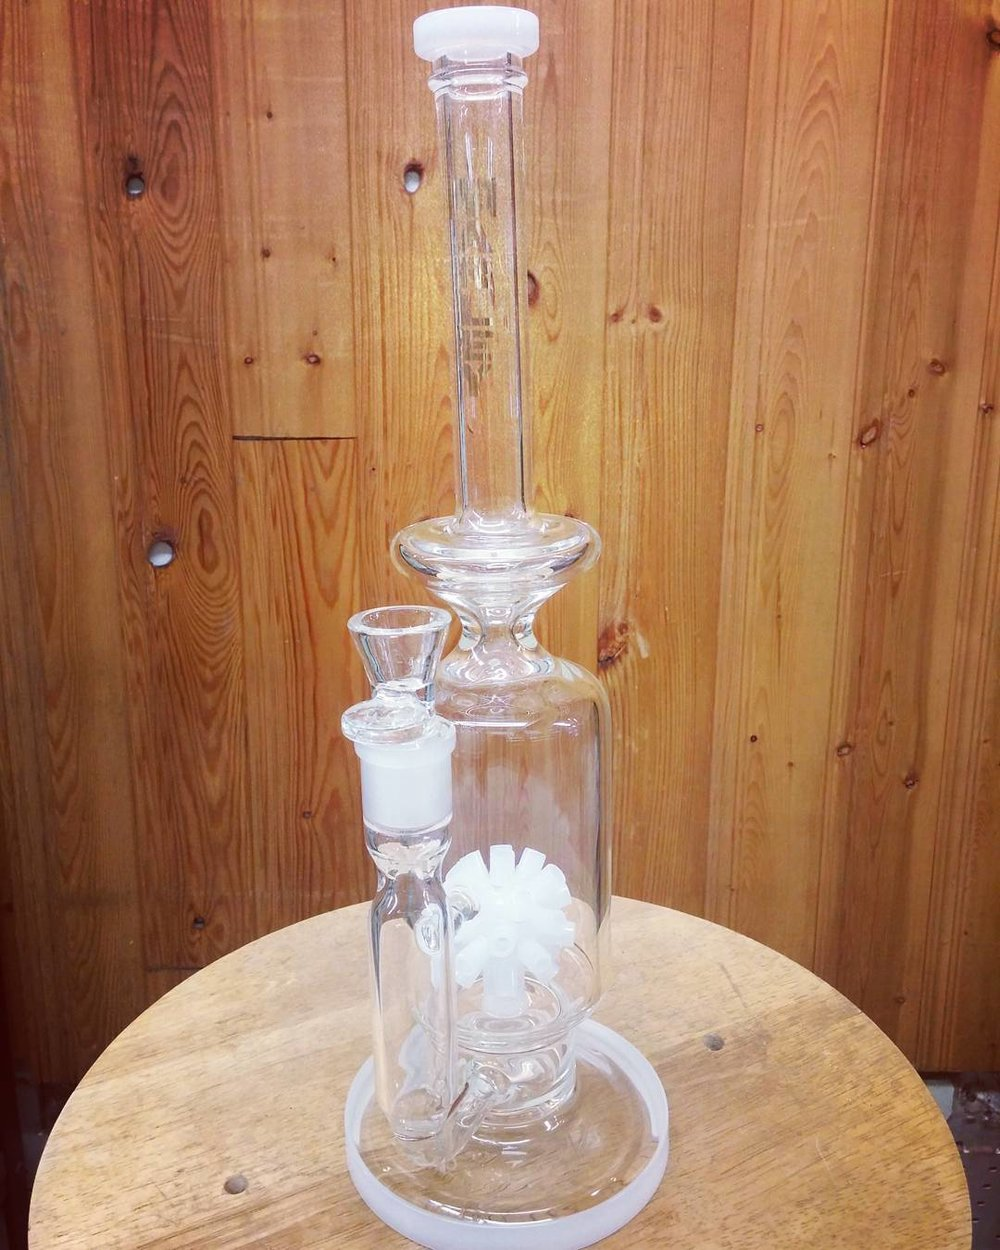 Want_to_get_the_perfect__christmas__gift_for_that_special__stoner_in_your_life__Come_on_down_to_Dolans_and_check_out_some_awesome__deals---------------------------------------__bong__bongrips__bongs__bongbeauties__girlswhosmokeweed__weedstagram__weed.jpg